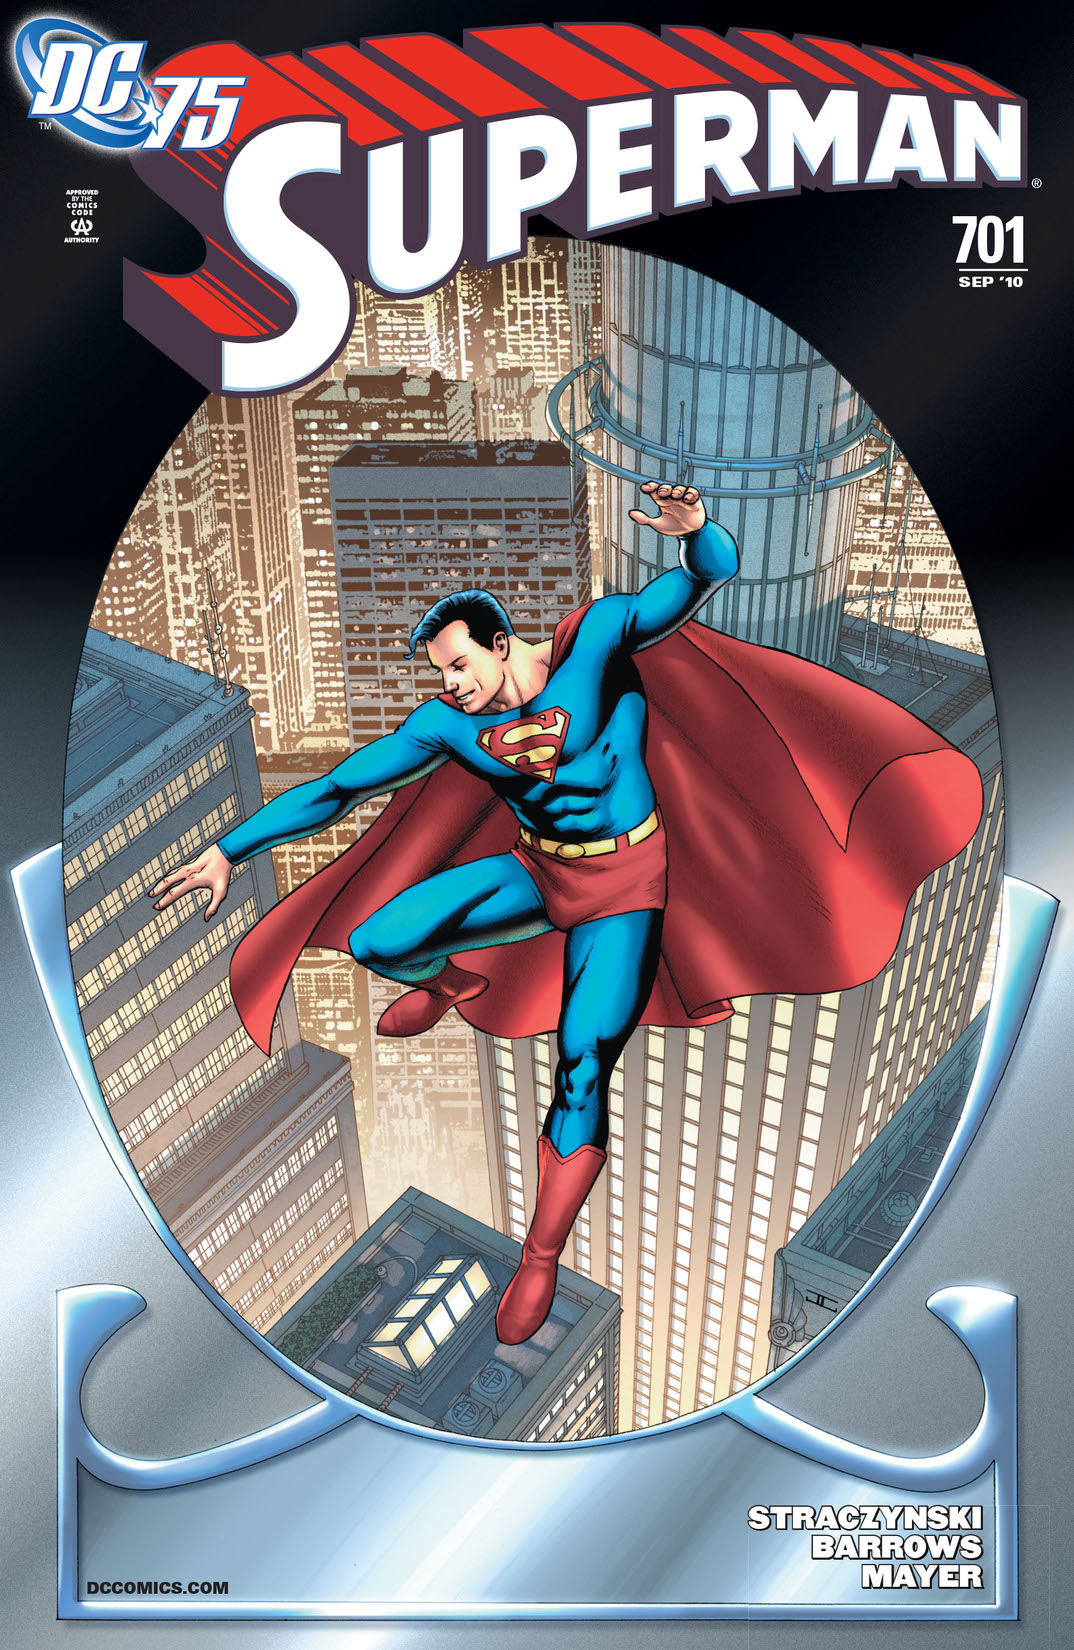 https://vignette.wikia.nocookie.net/marvel_dc/images/e/e2/Superman_Vol_1_701_Variant.jpg/revision/latest?cb=20200502082102